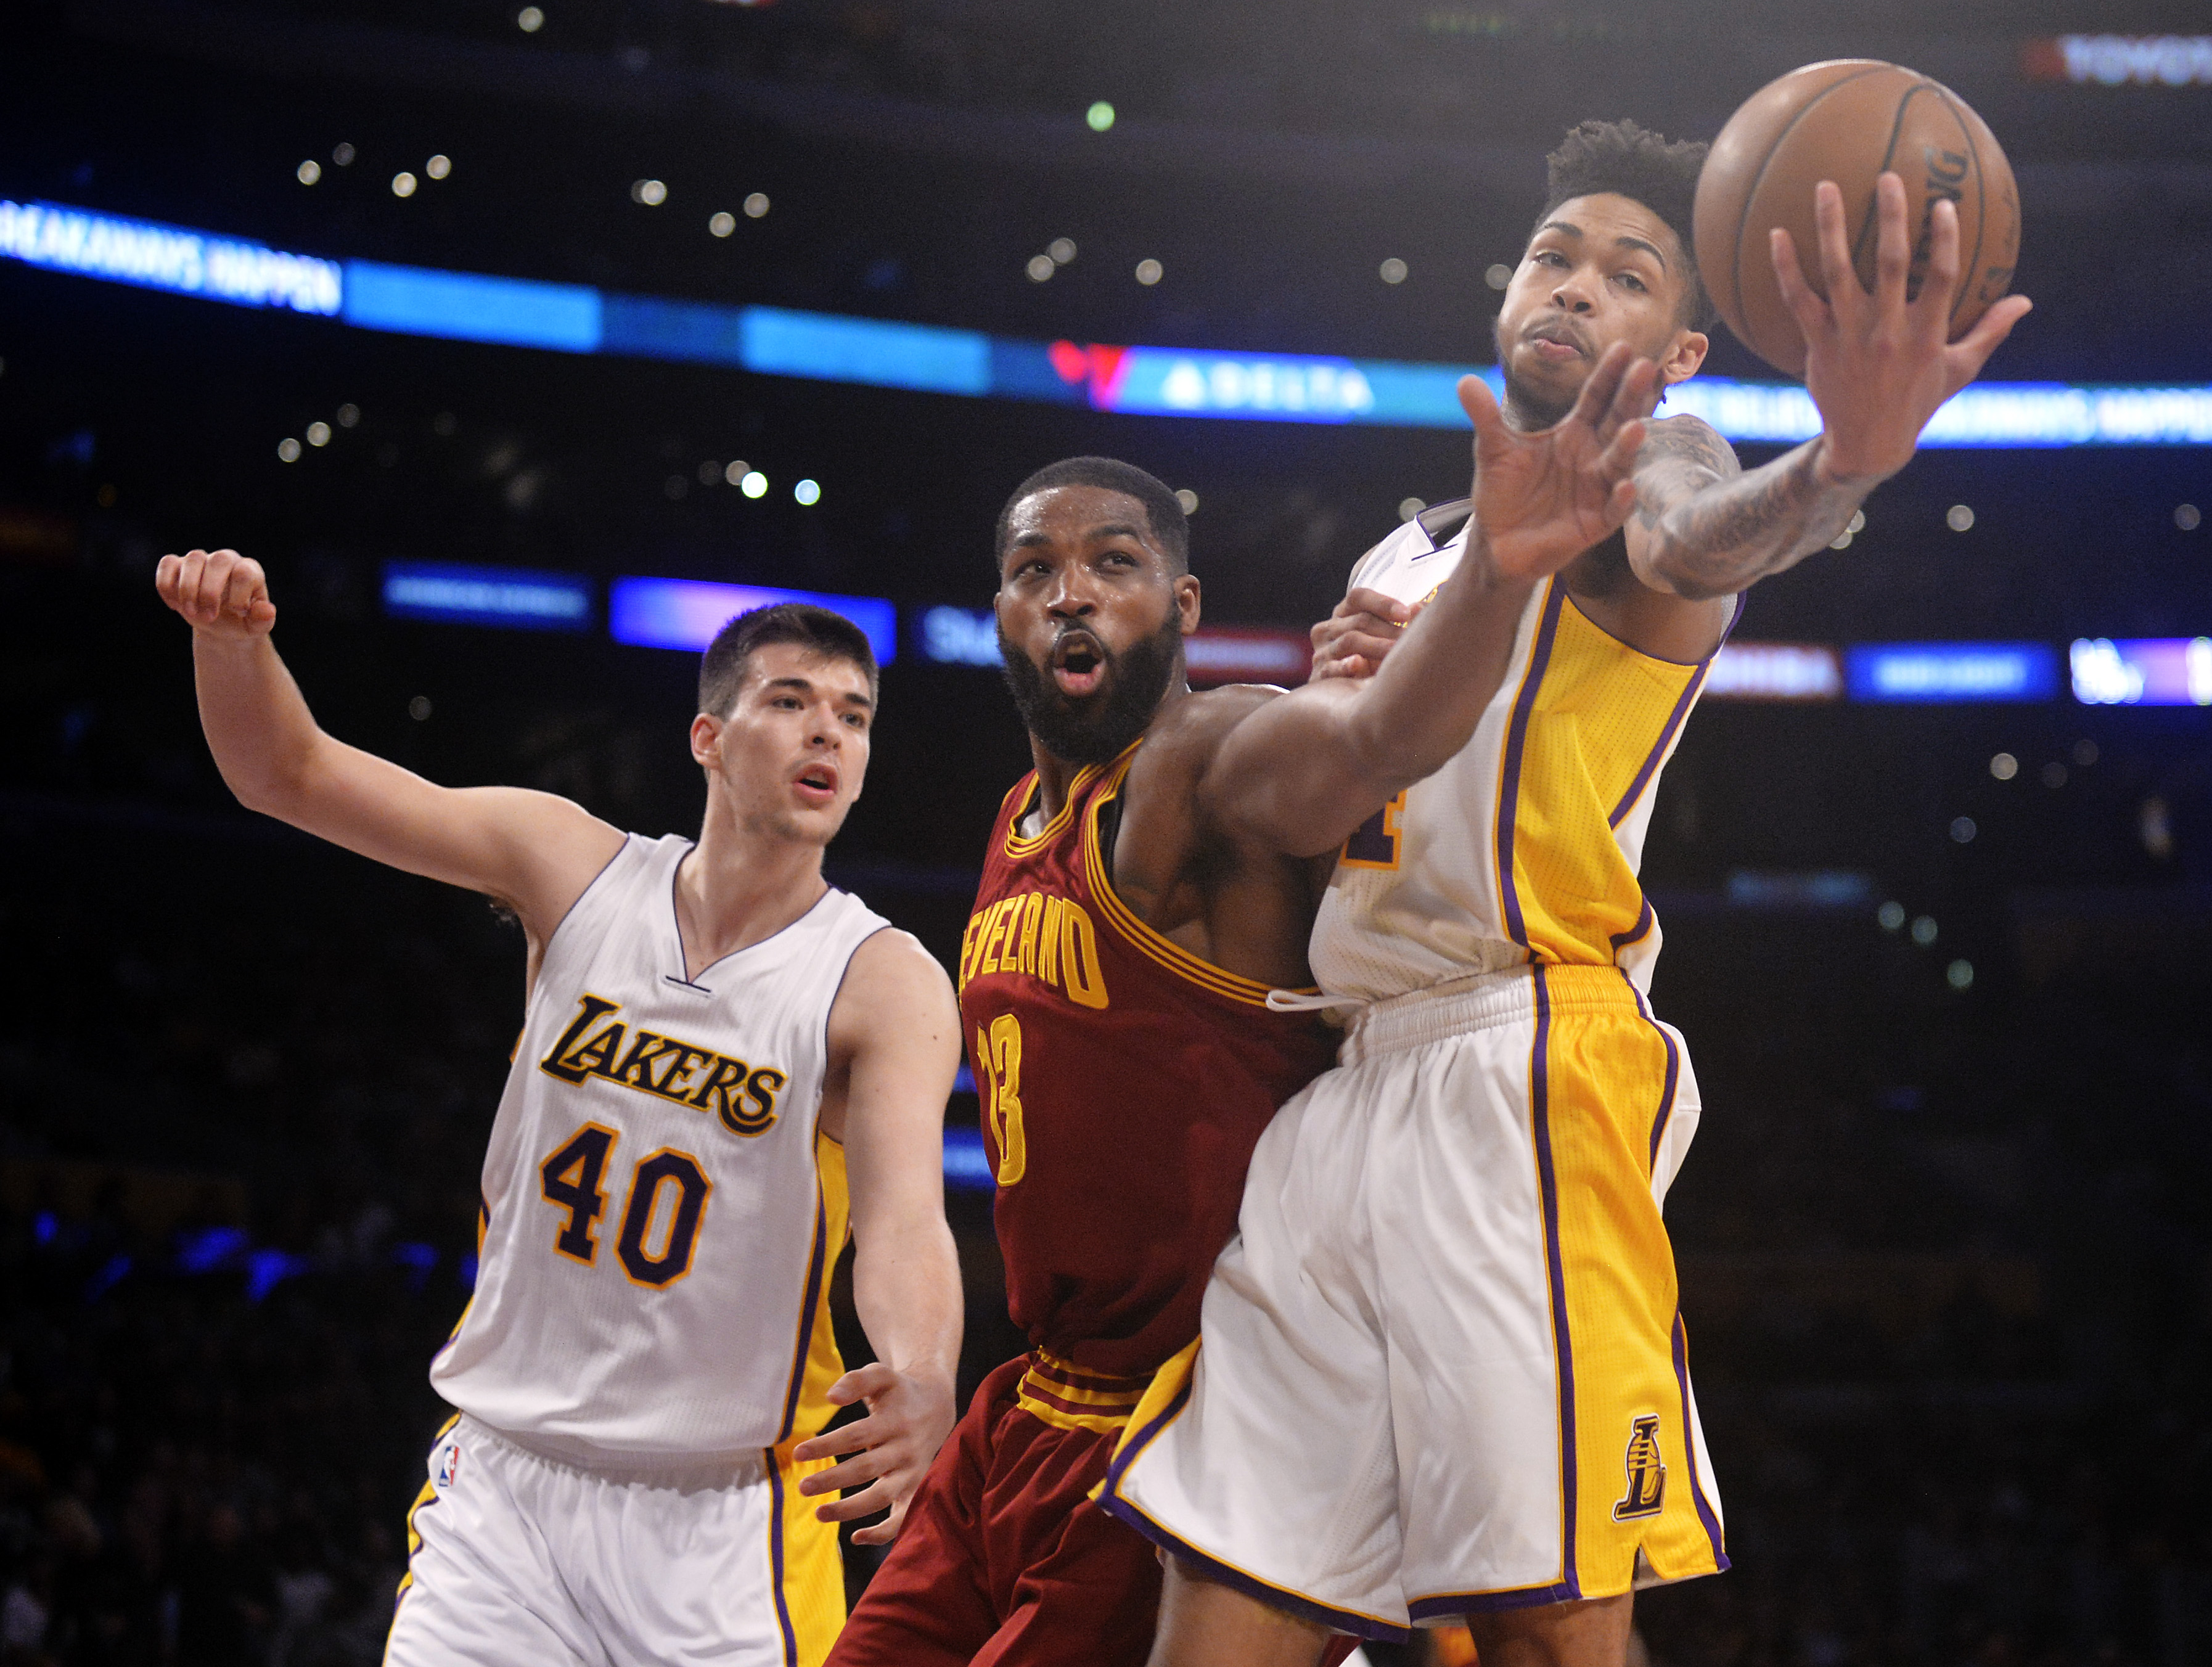 9959106-nba-cleveland-cavaliers-at-los-angeles-lakers-1